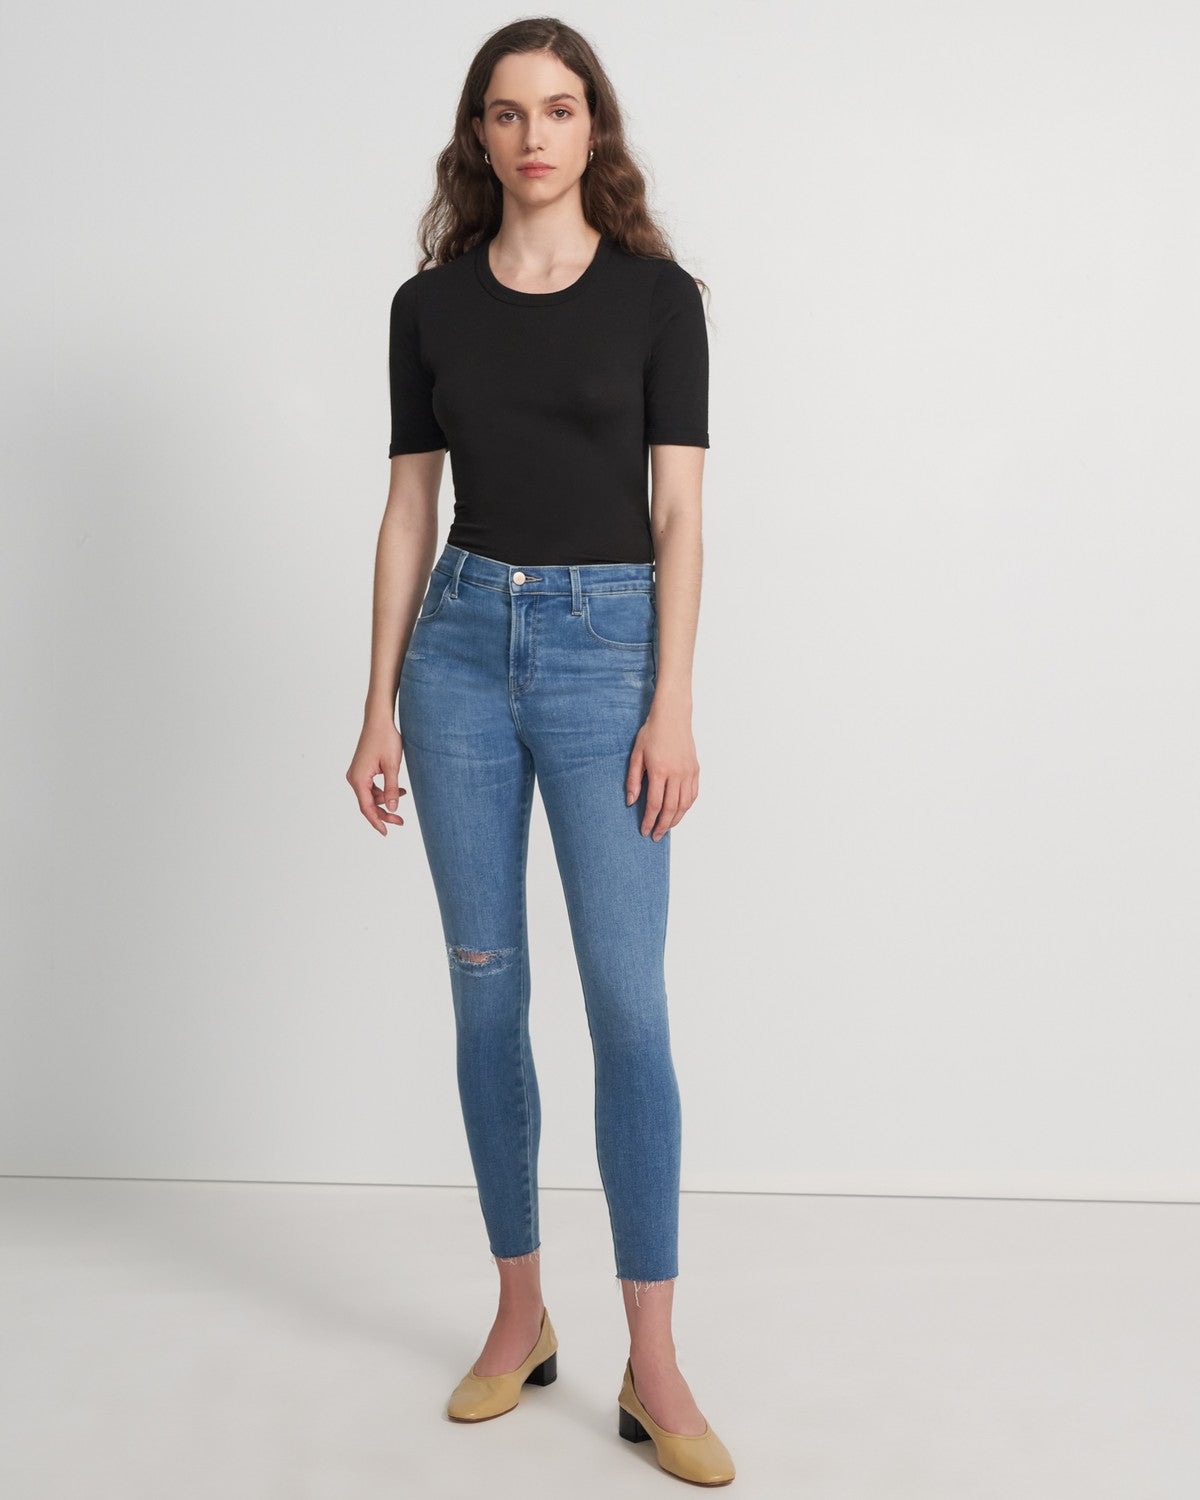 J Brand Alana High Rise Crop Skinny in Limitless Joy Destruct